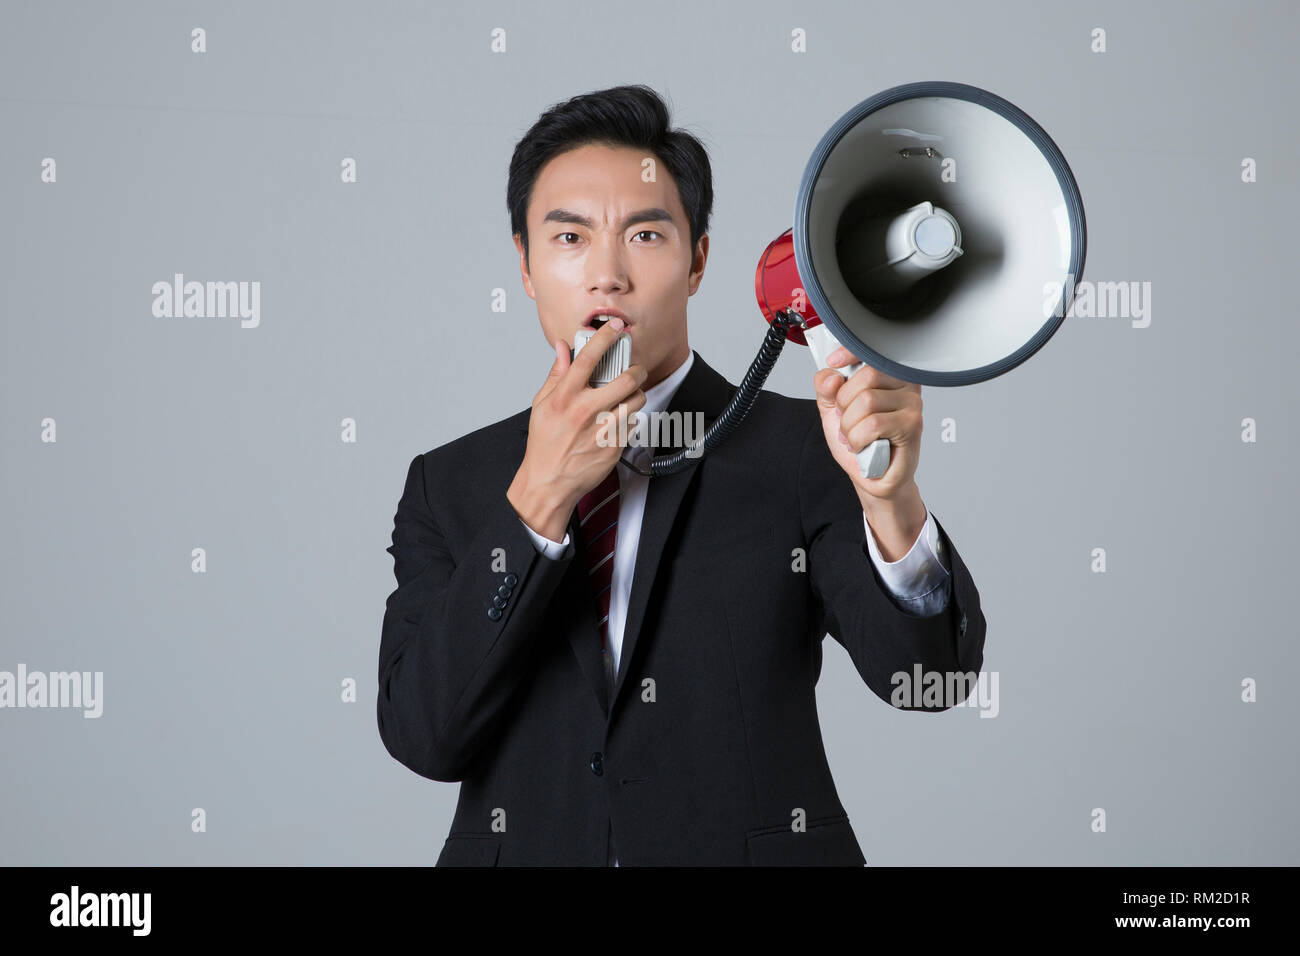 Young businessman concept photo. 128 - Stock Image